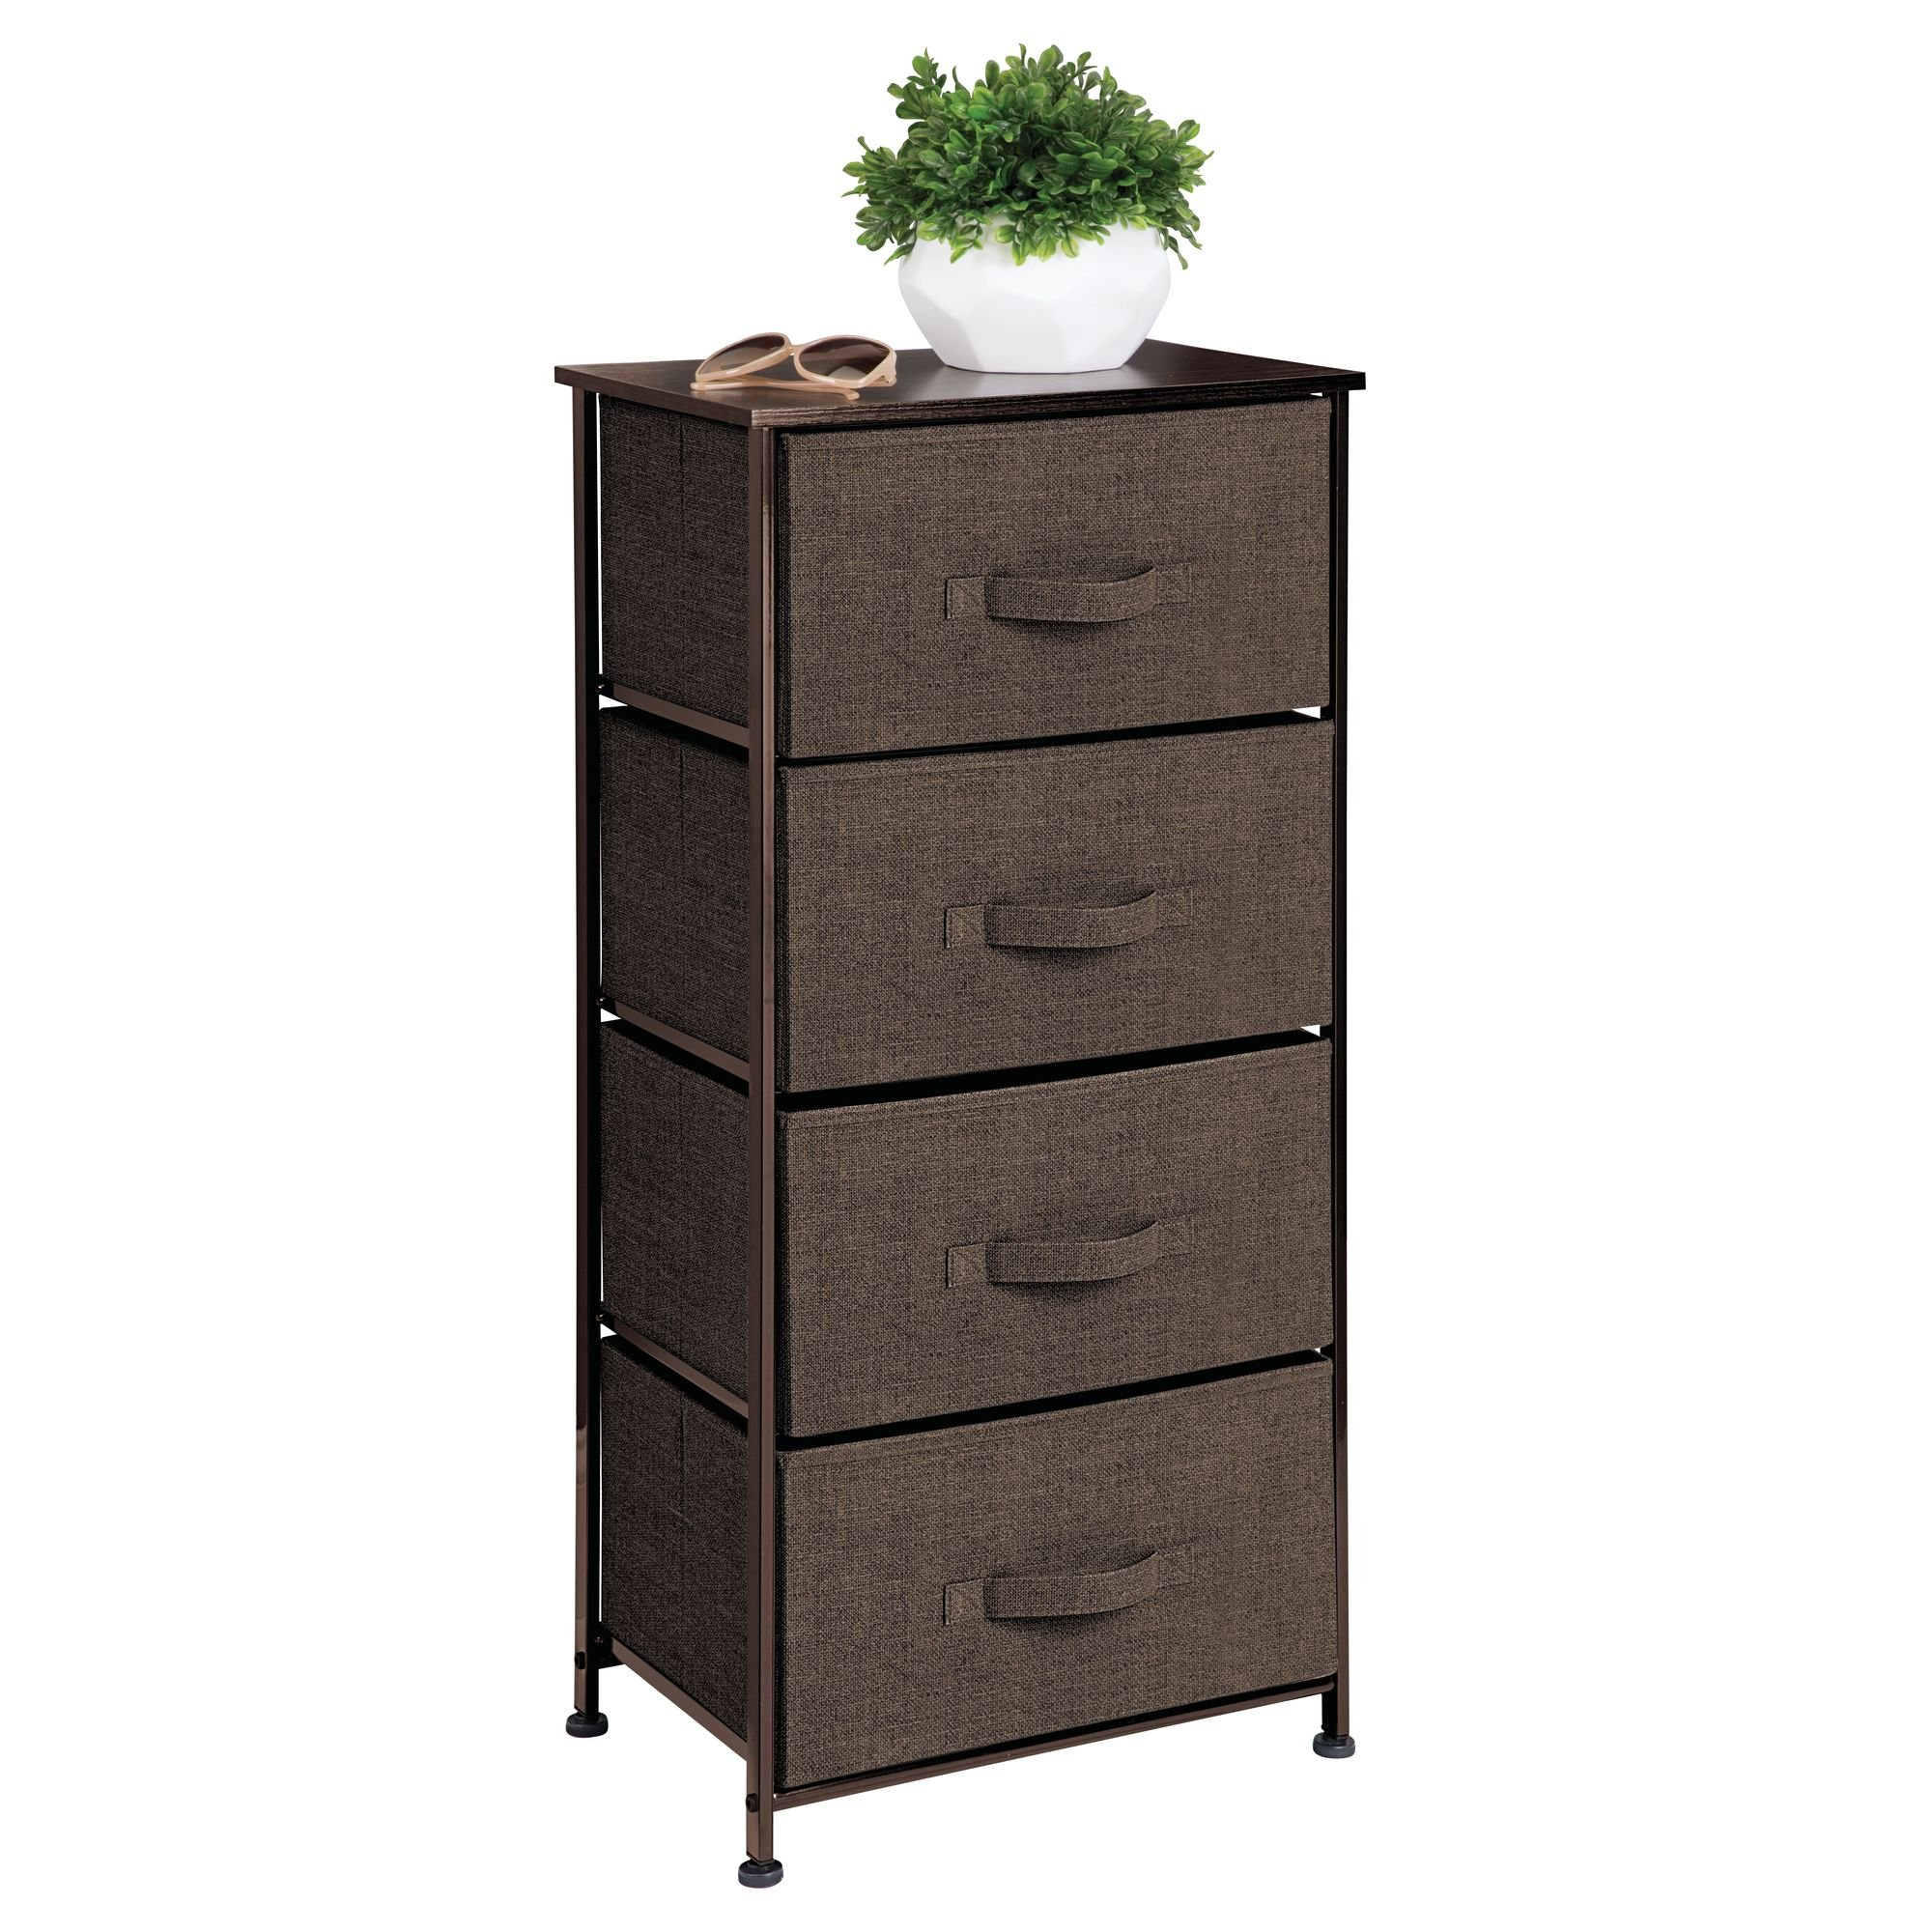 mDesign Fabric 4-Drawer Dresser and Storage Organizer Unit for Bedroom, Dorm Room, Apartment, Small Living Spaces - Espresso